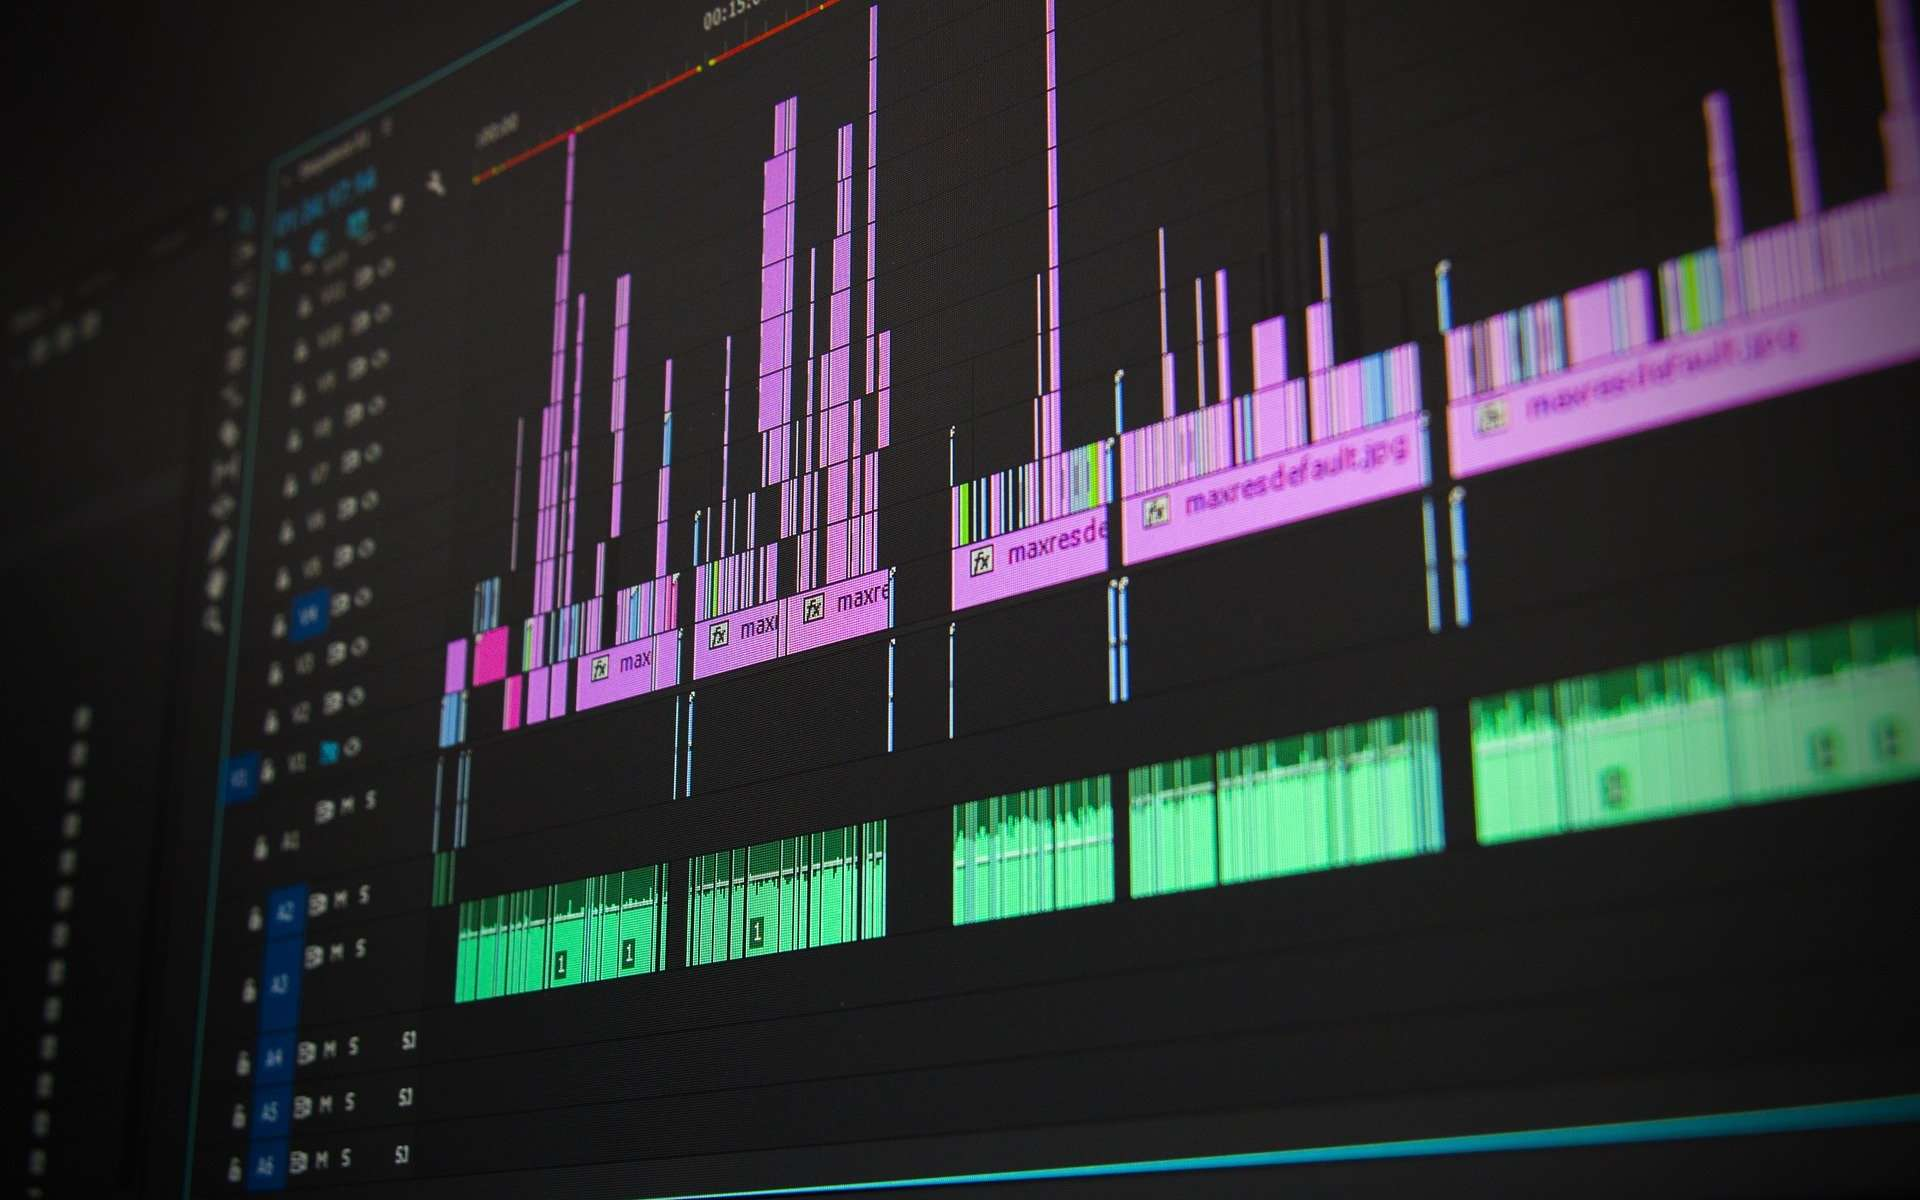 Réduction de 89% sur la formation à Final Cut Pro X © Recklessstudios, Pixabay